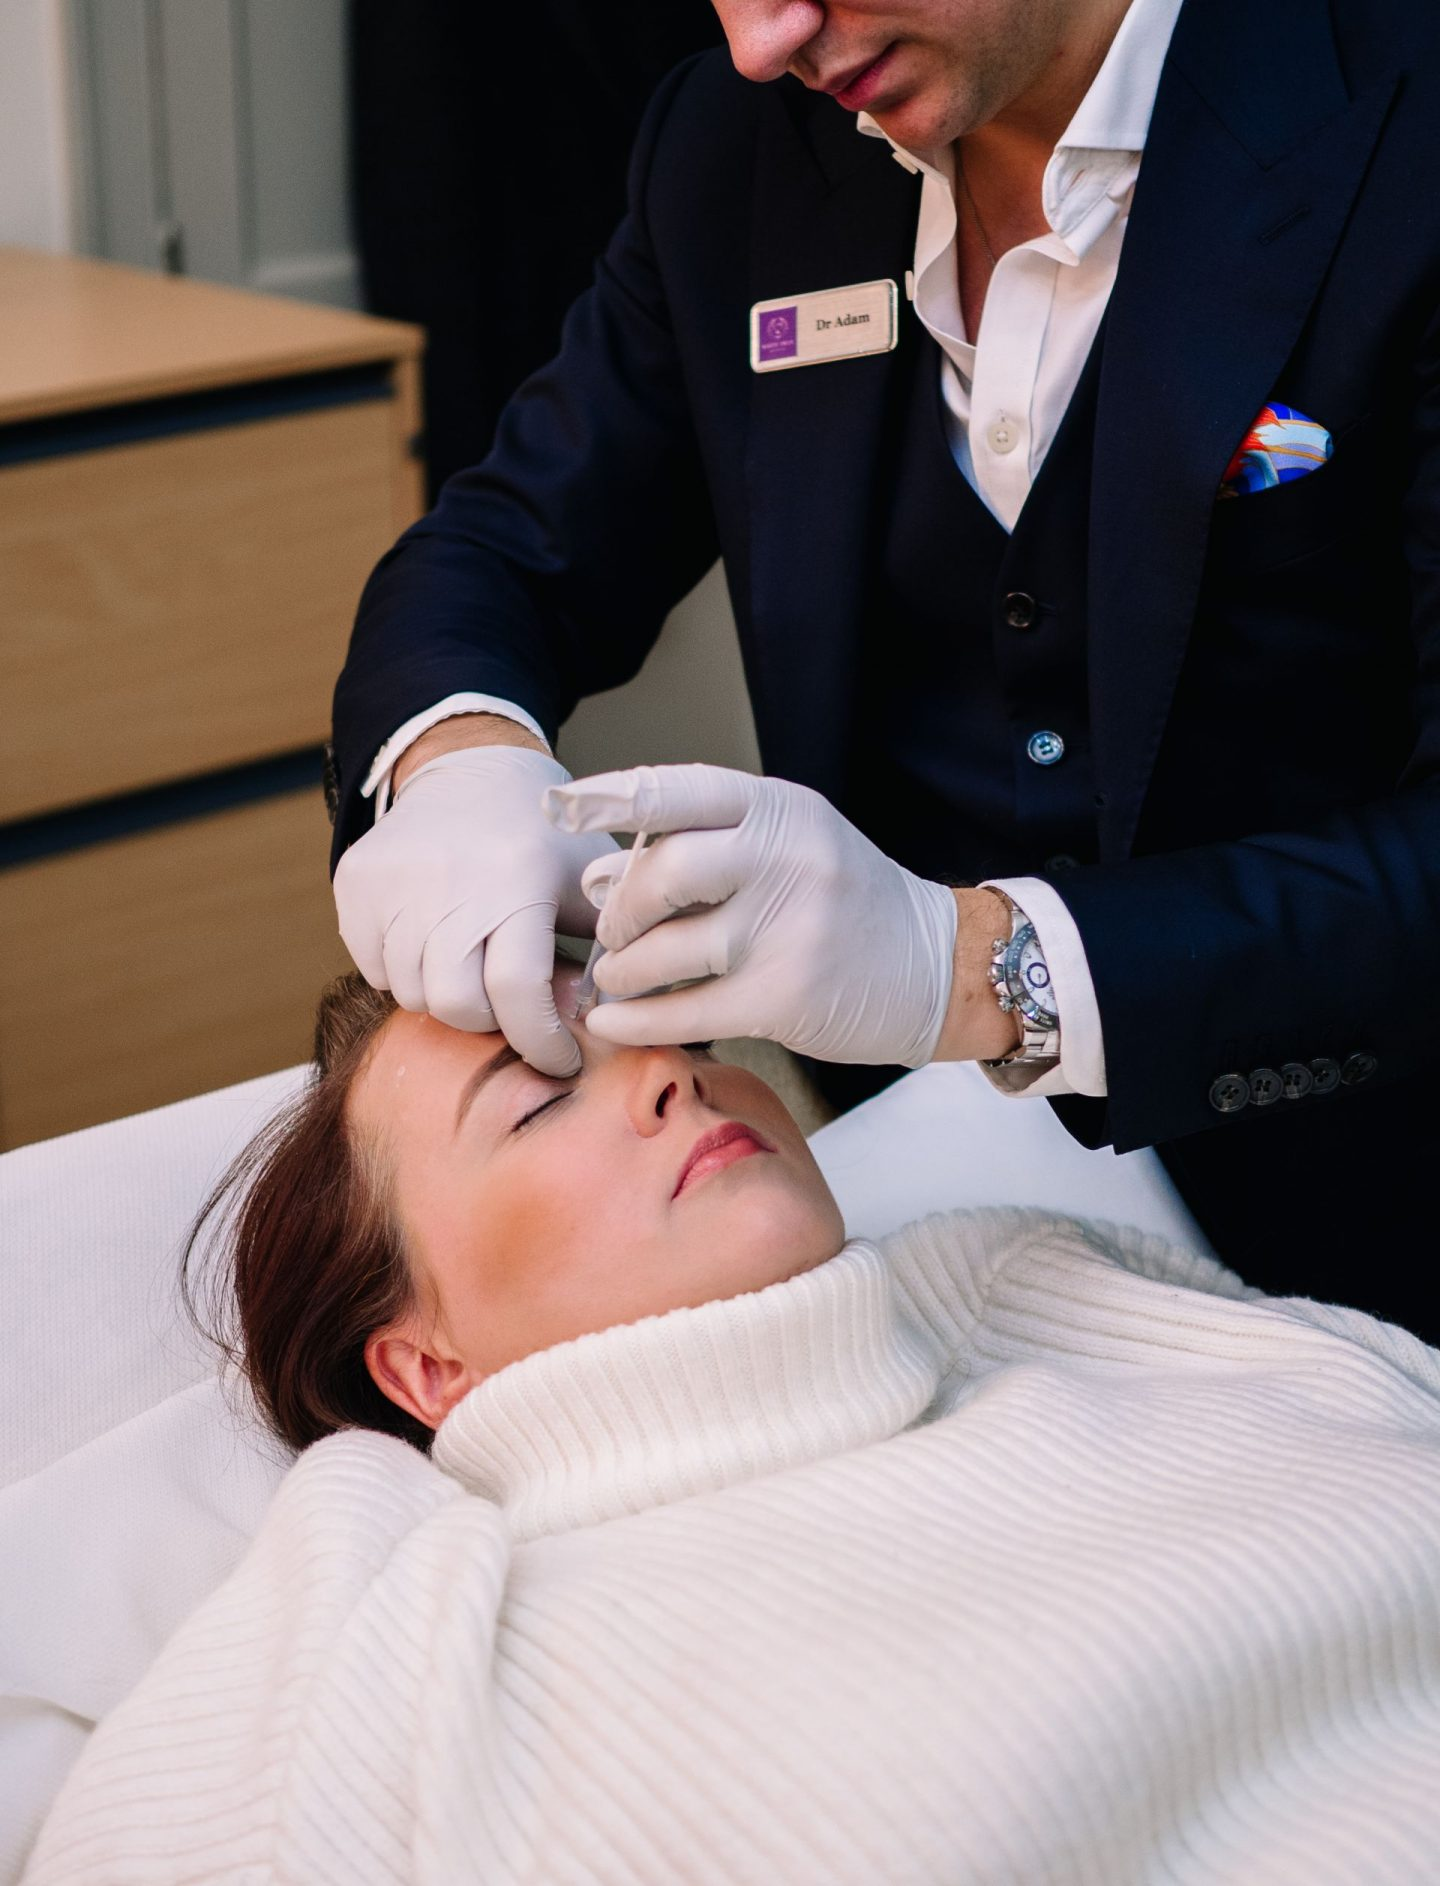 My Botox Diary | Everything You Need To Know About Getting Botox For The First Time